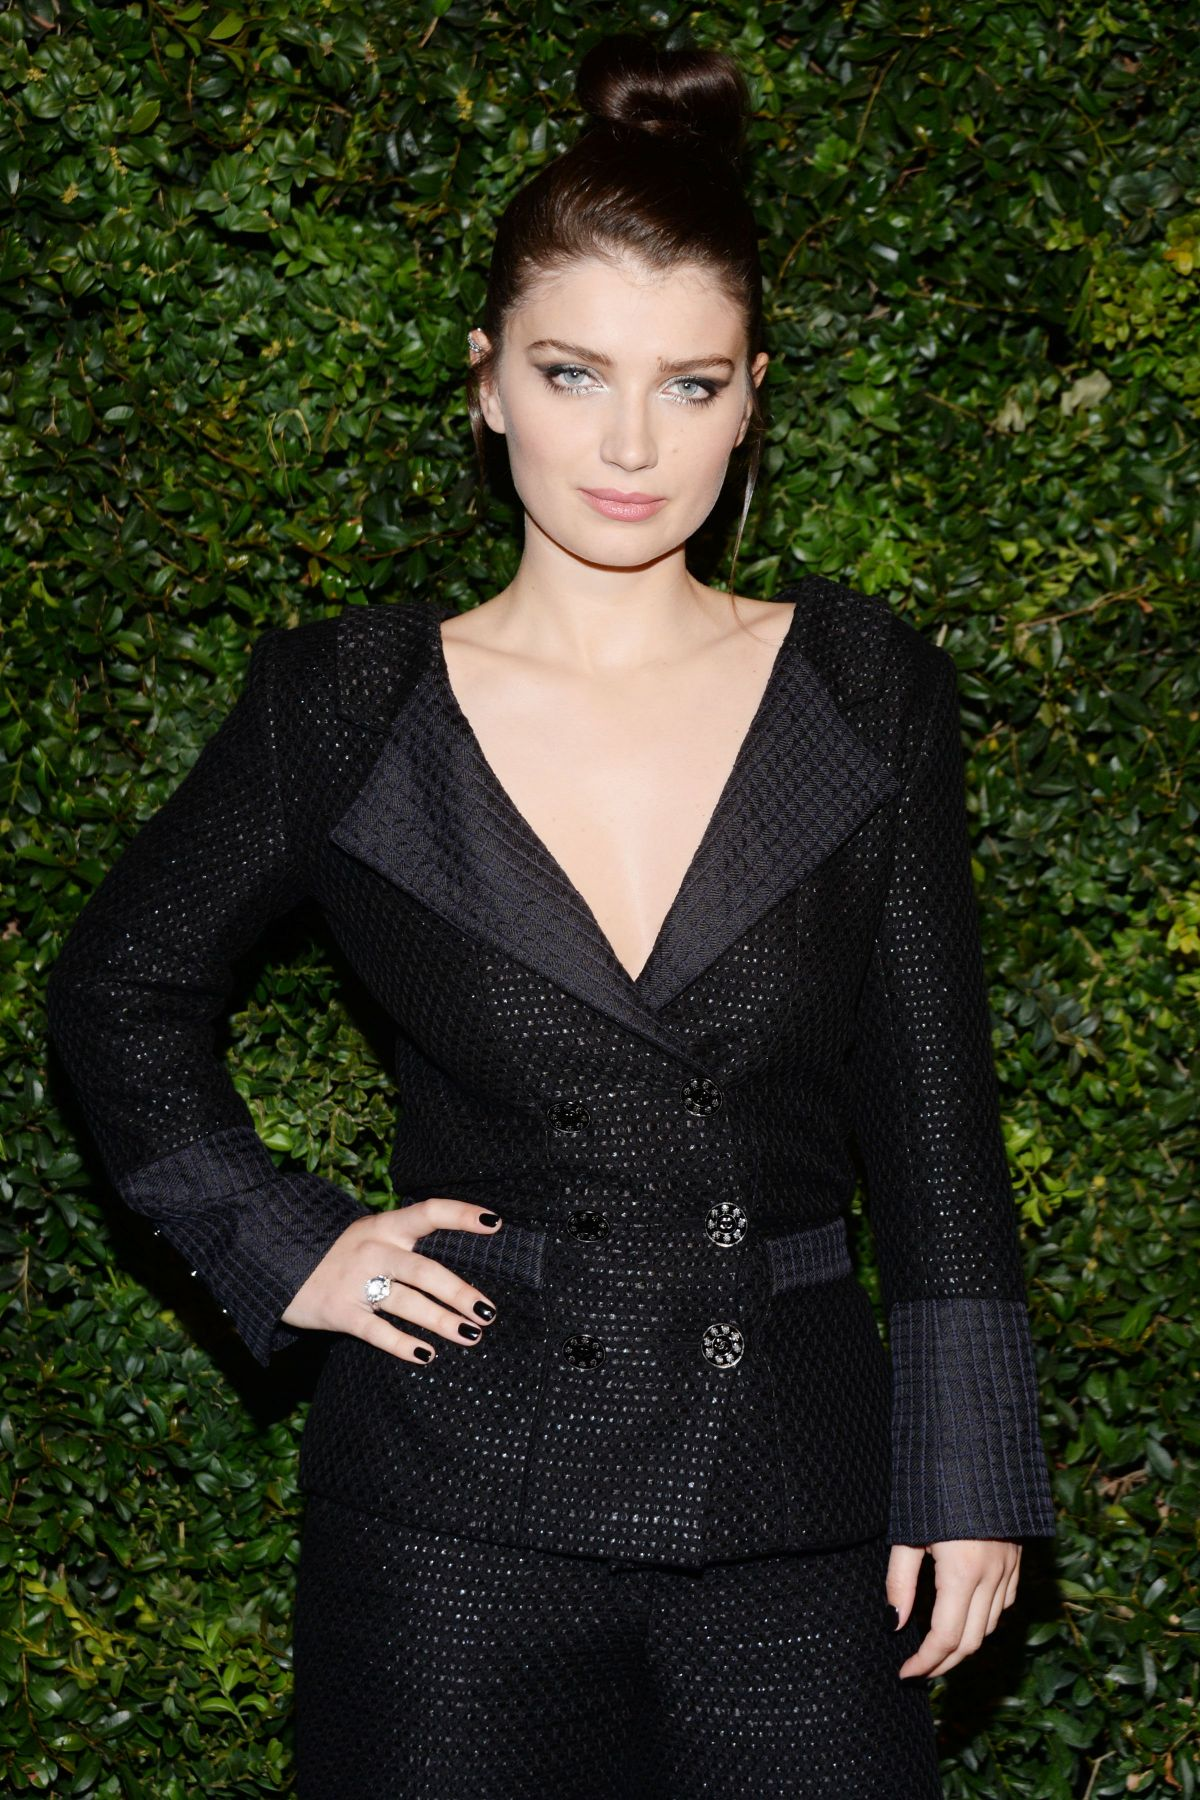 EVE HEWSON at Chanel and Charles Finch Pre-oscar Party in Los Angeles 02/27/2016